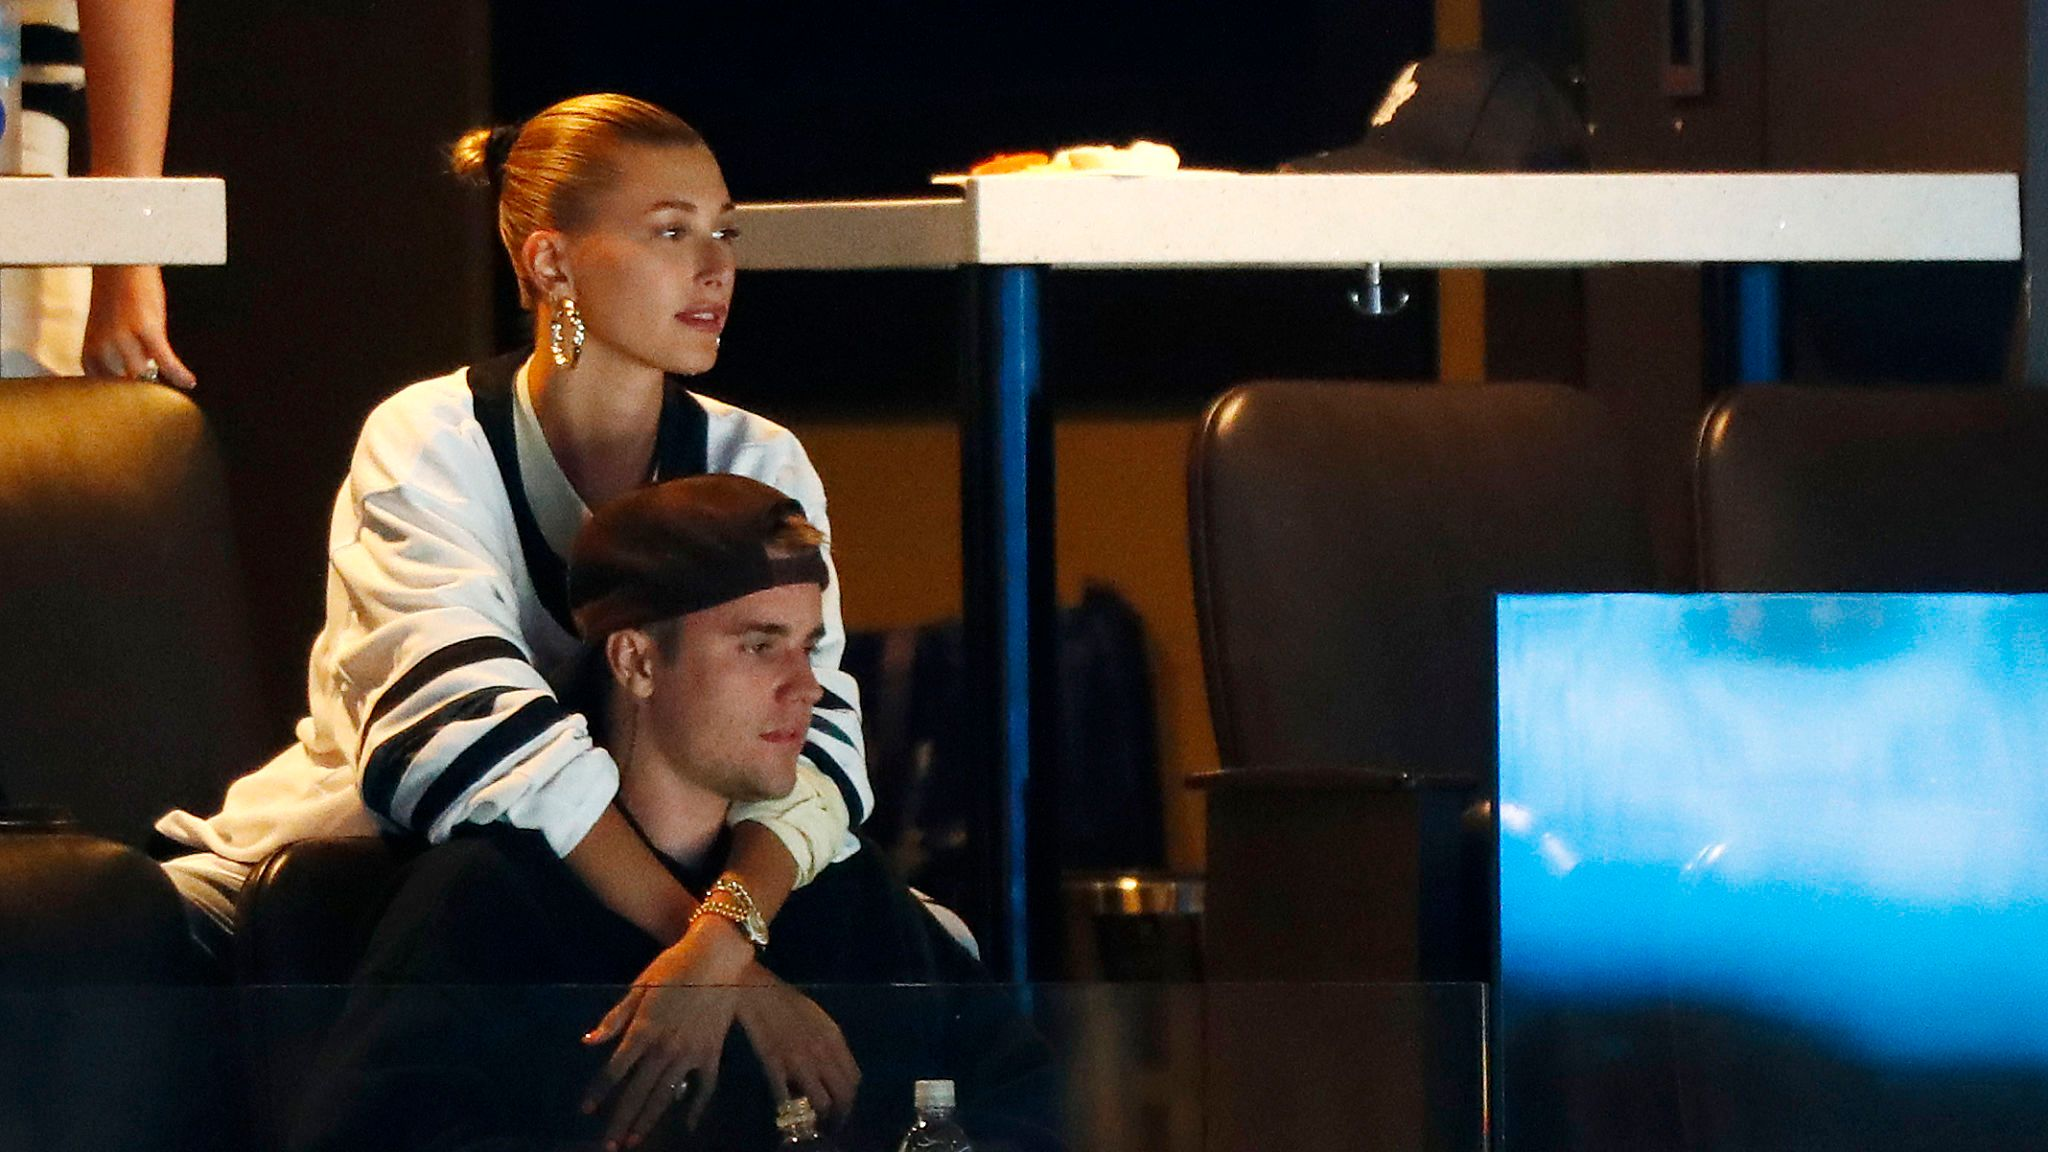 Justin Bieber is married to model Hailey Baldwin